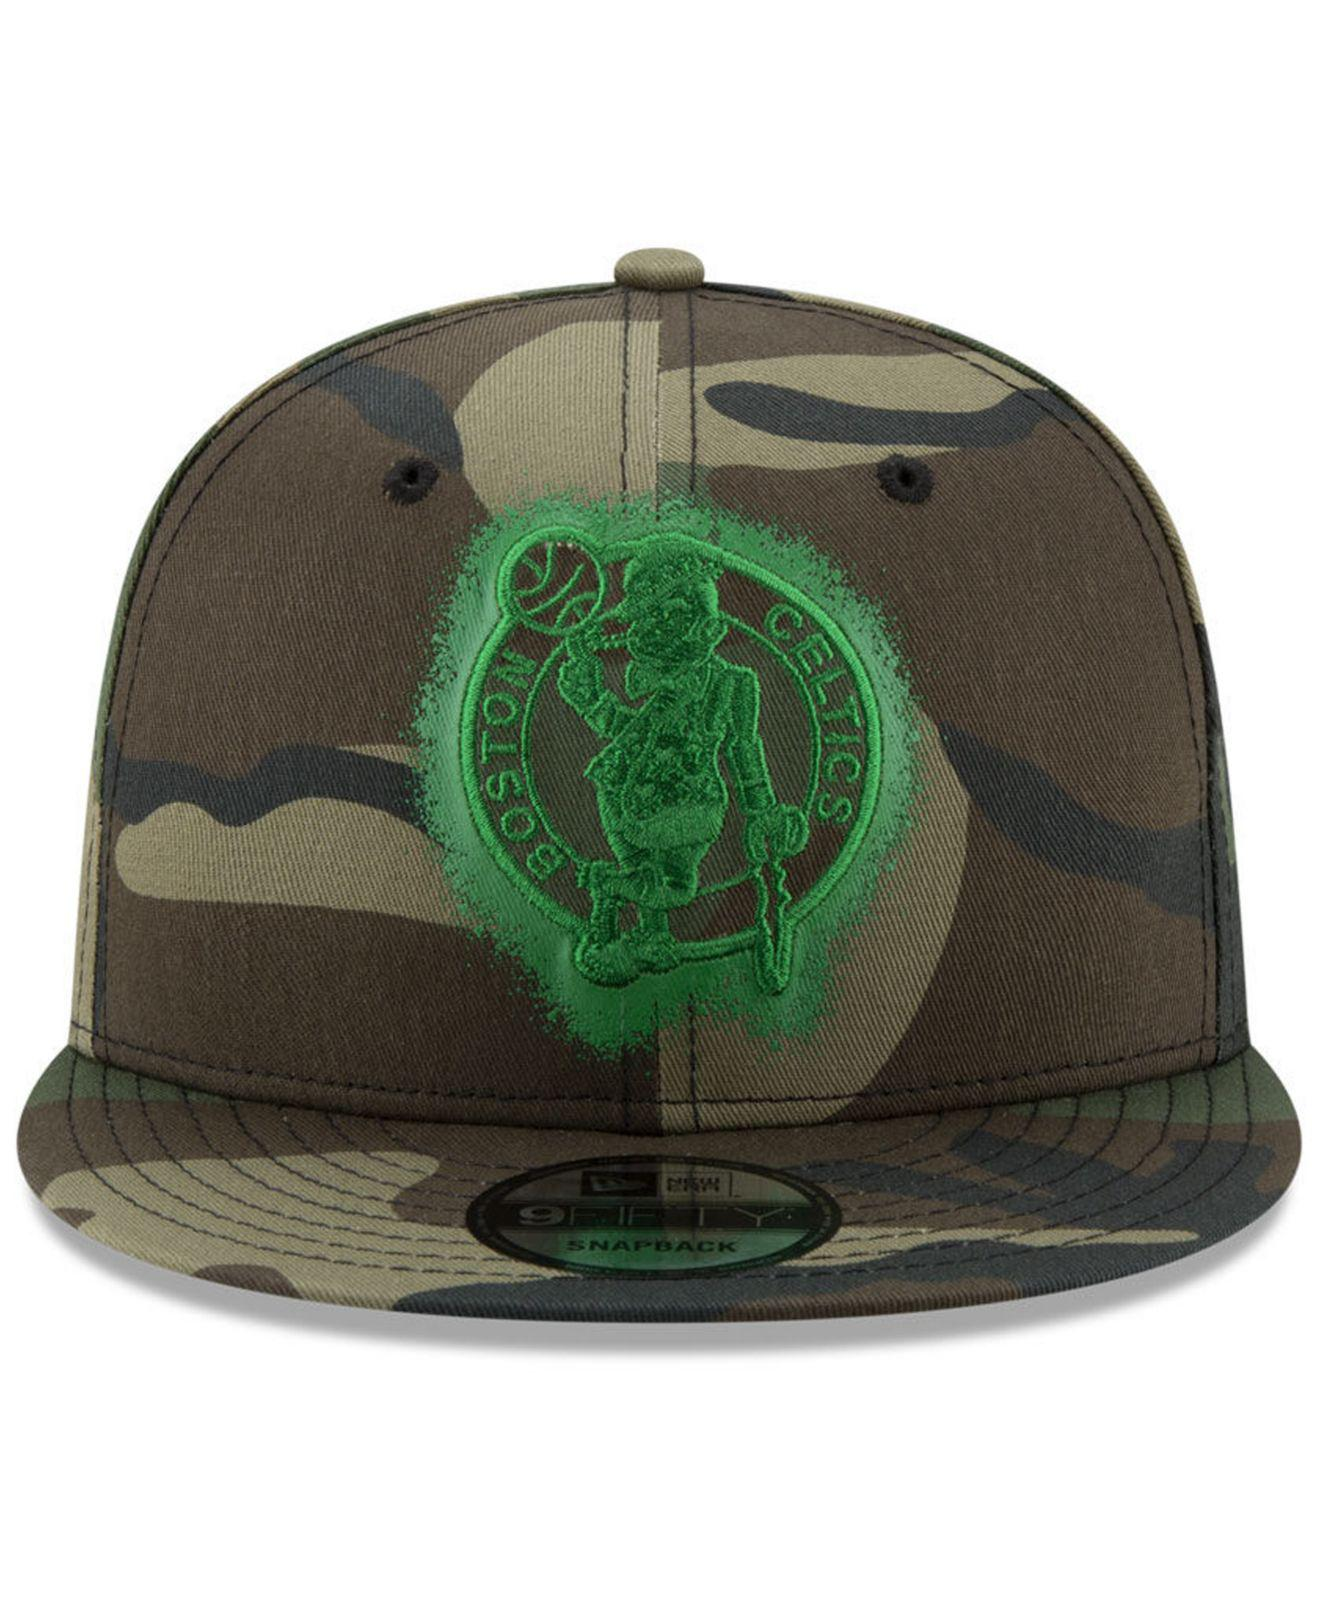 new product 8e5af 40385 ... france lyst ktz boston celtics overspray 9fifty snapback cap in green  for men 1e7cf 17d17